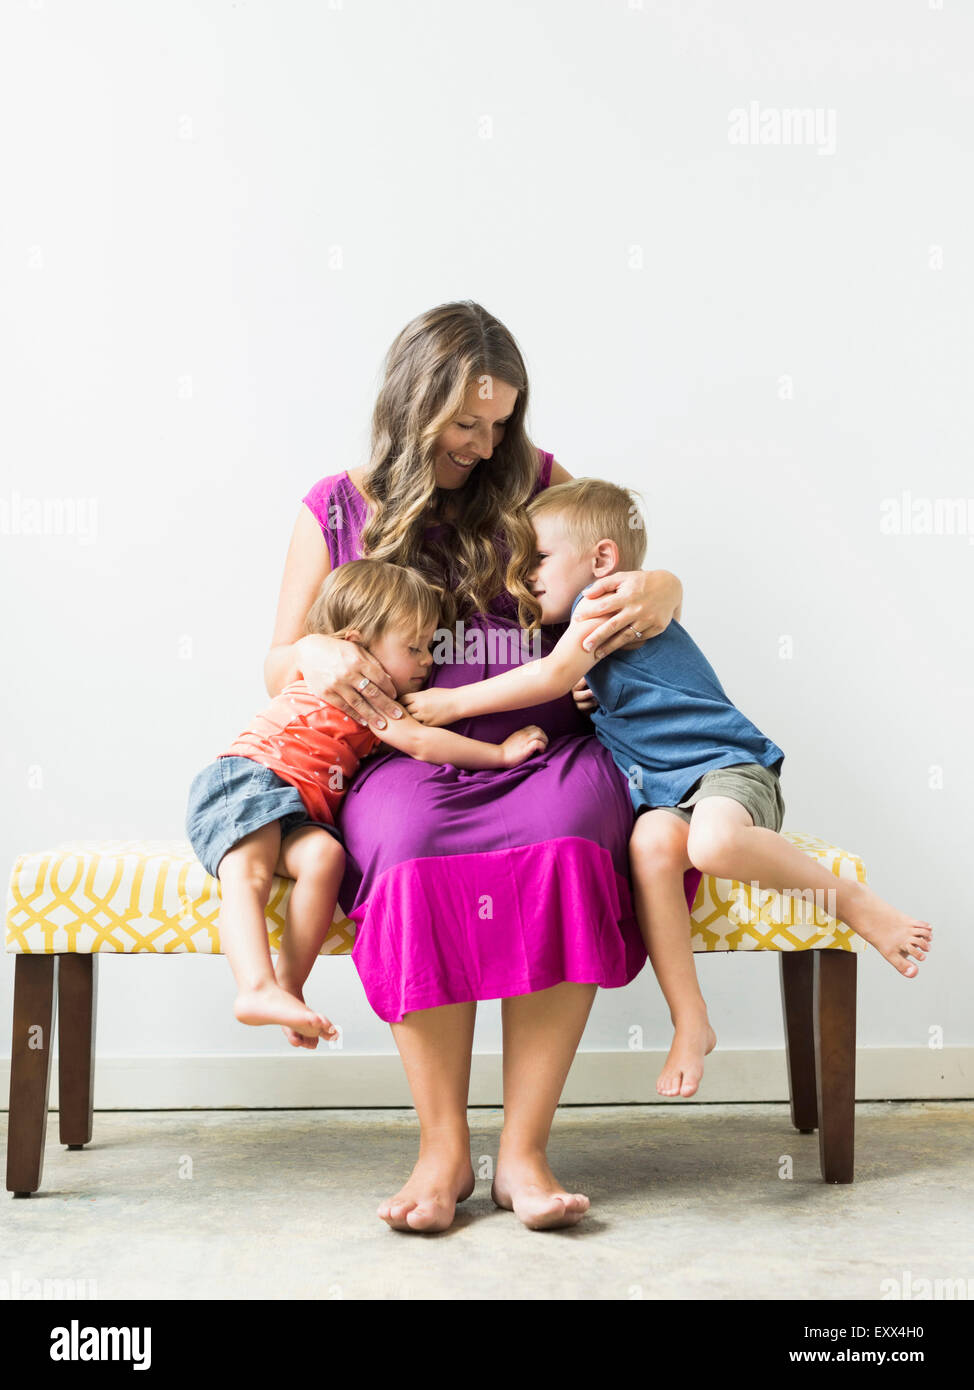 Children (2-3) hugging pregnant mother on bench - Stock Image